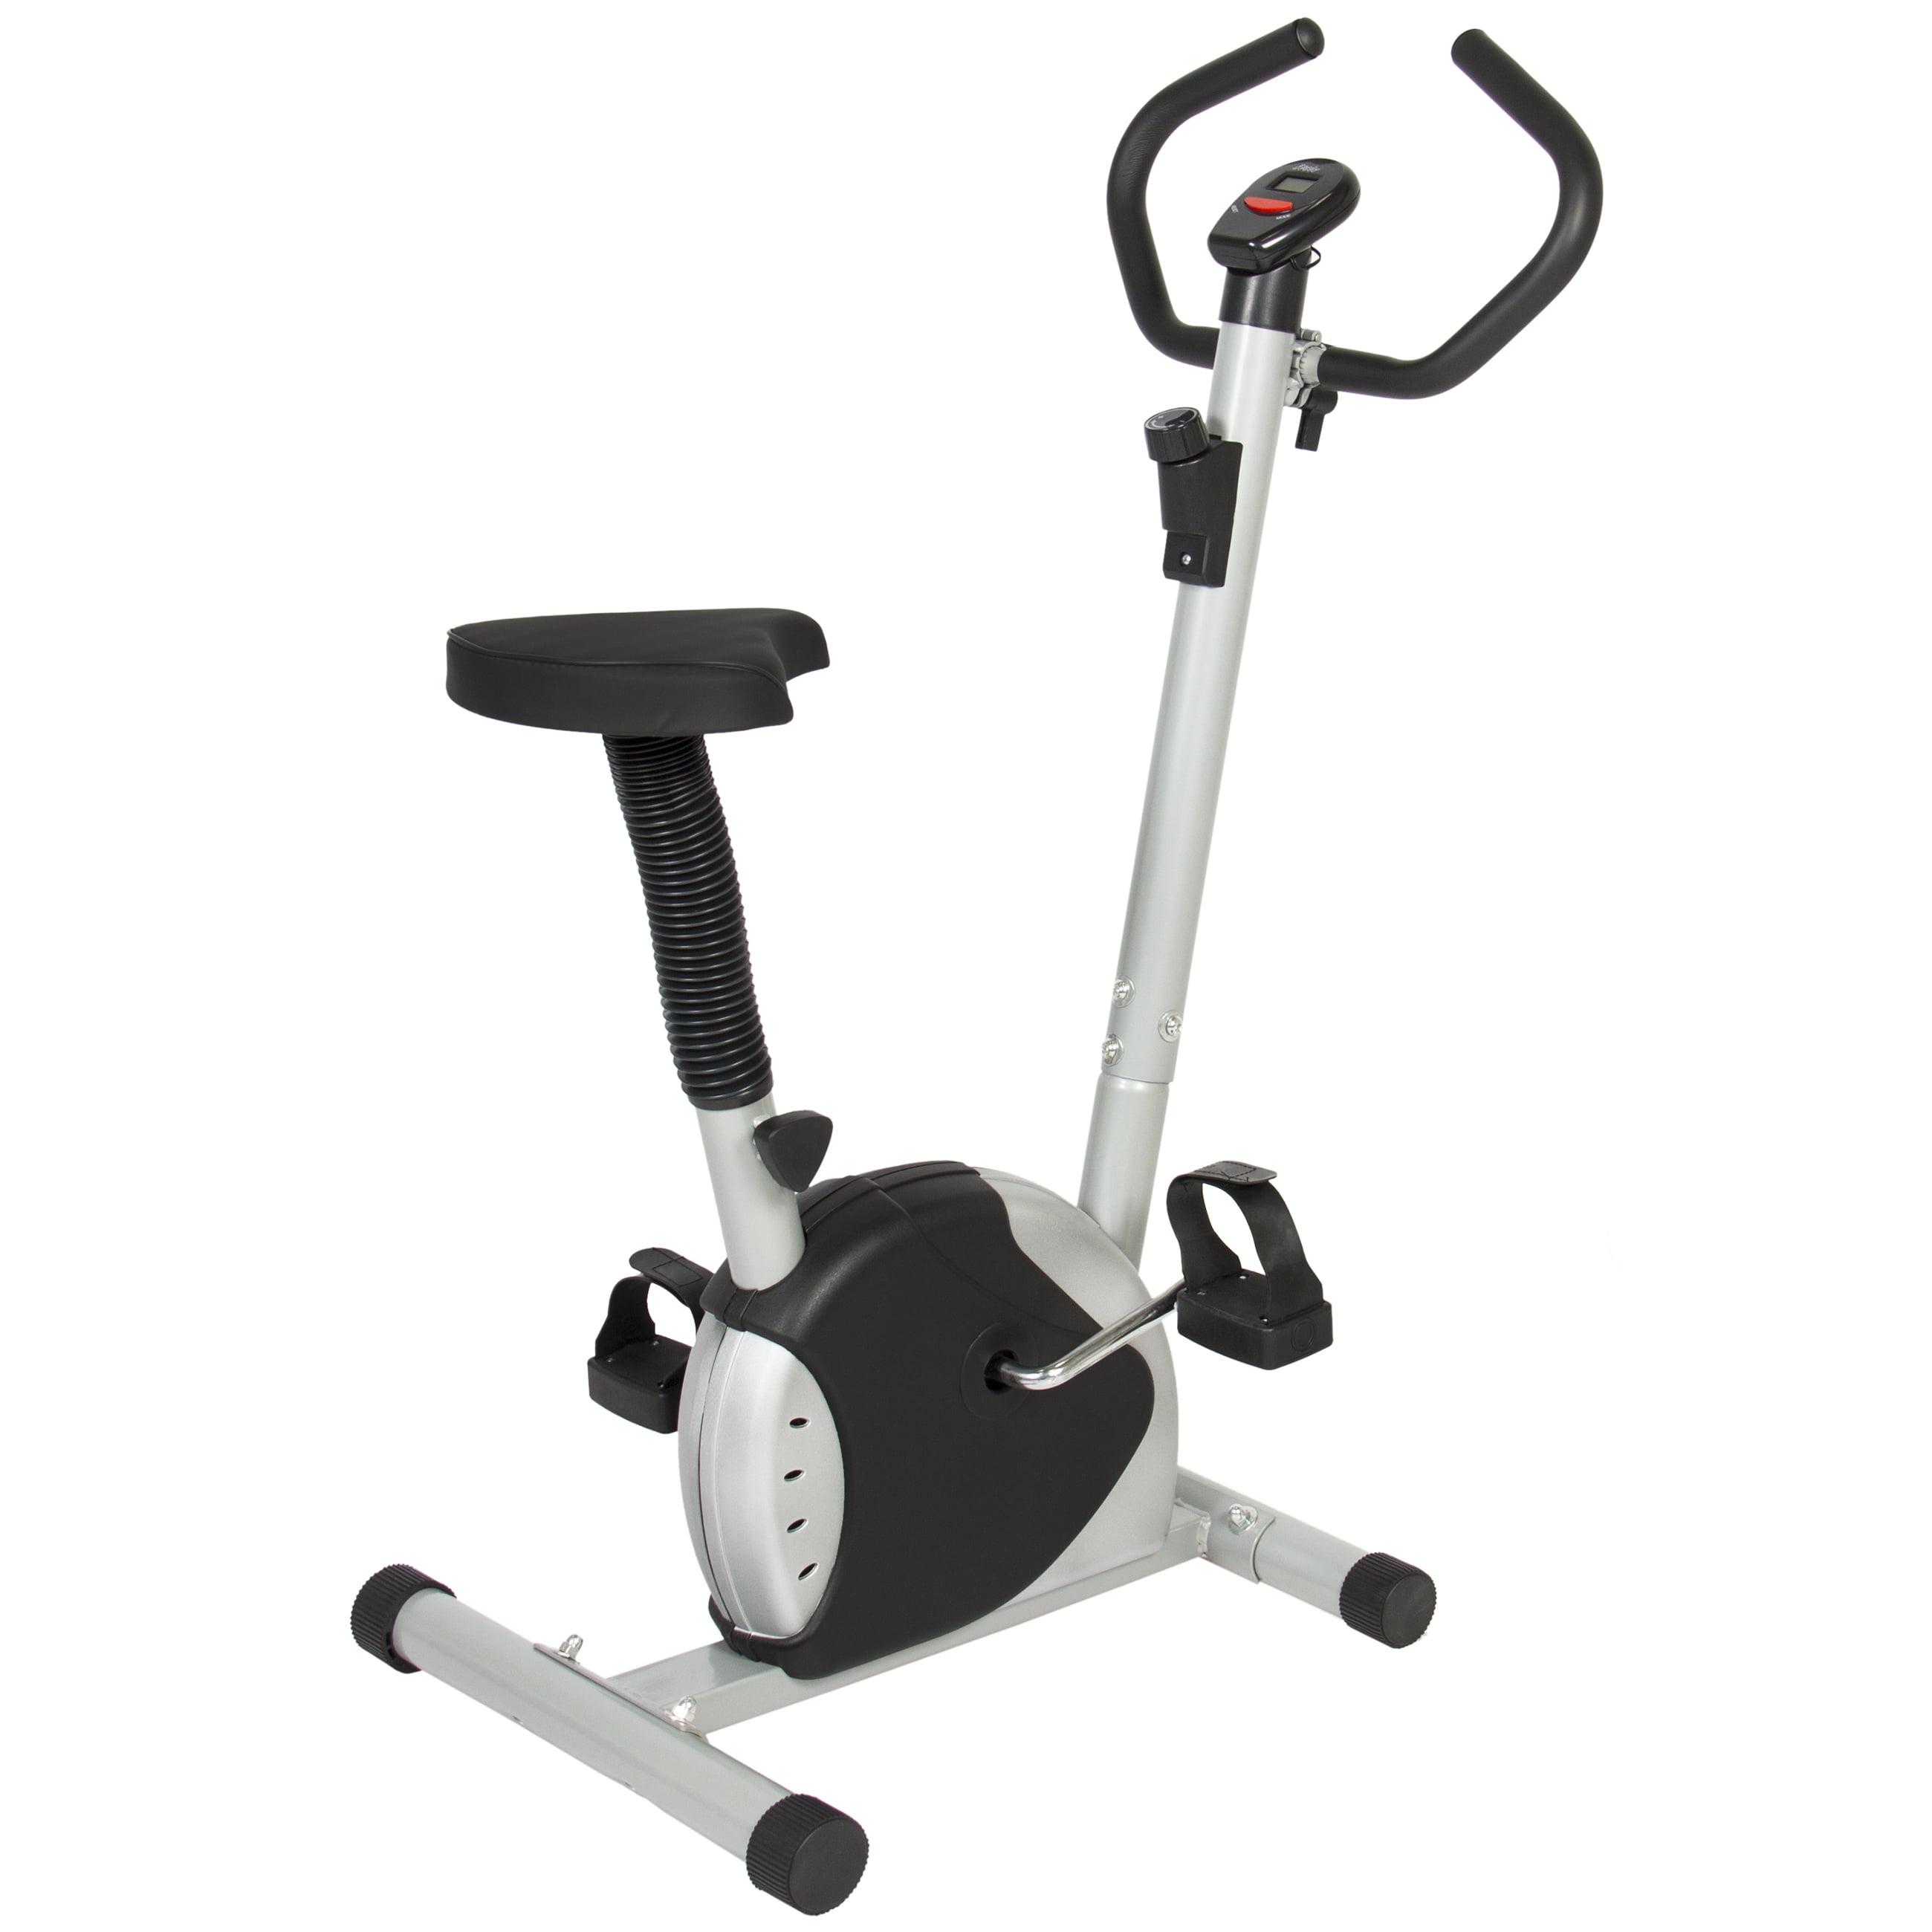 Ironman h class 210 indoor upright exercise bike with 21 computer